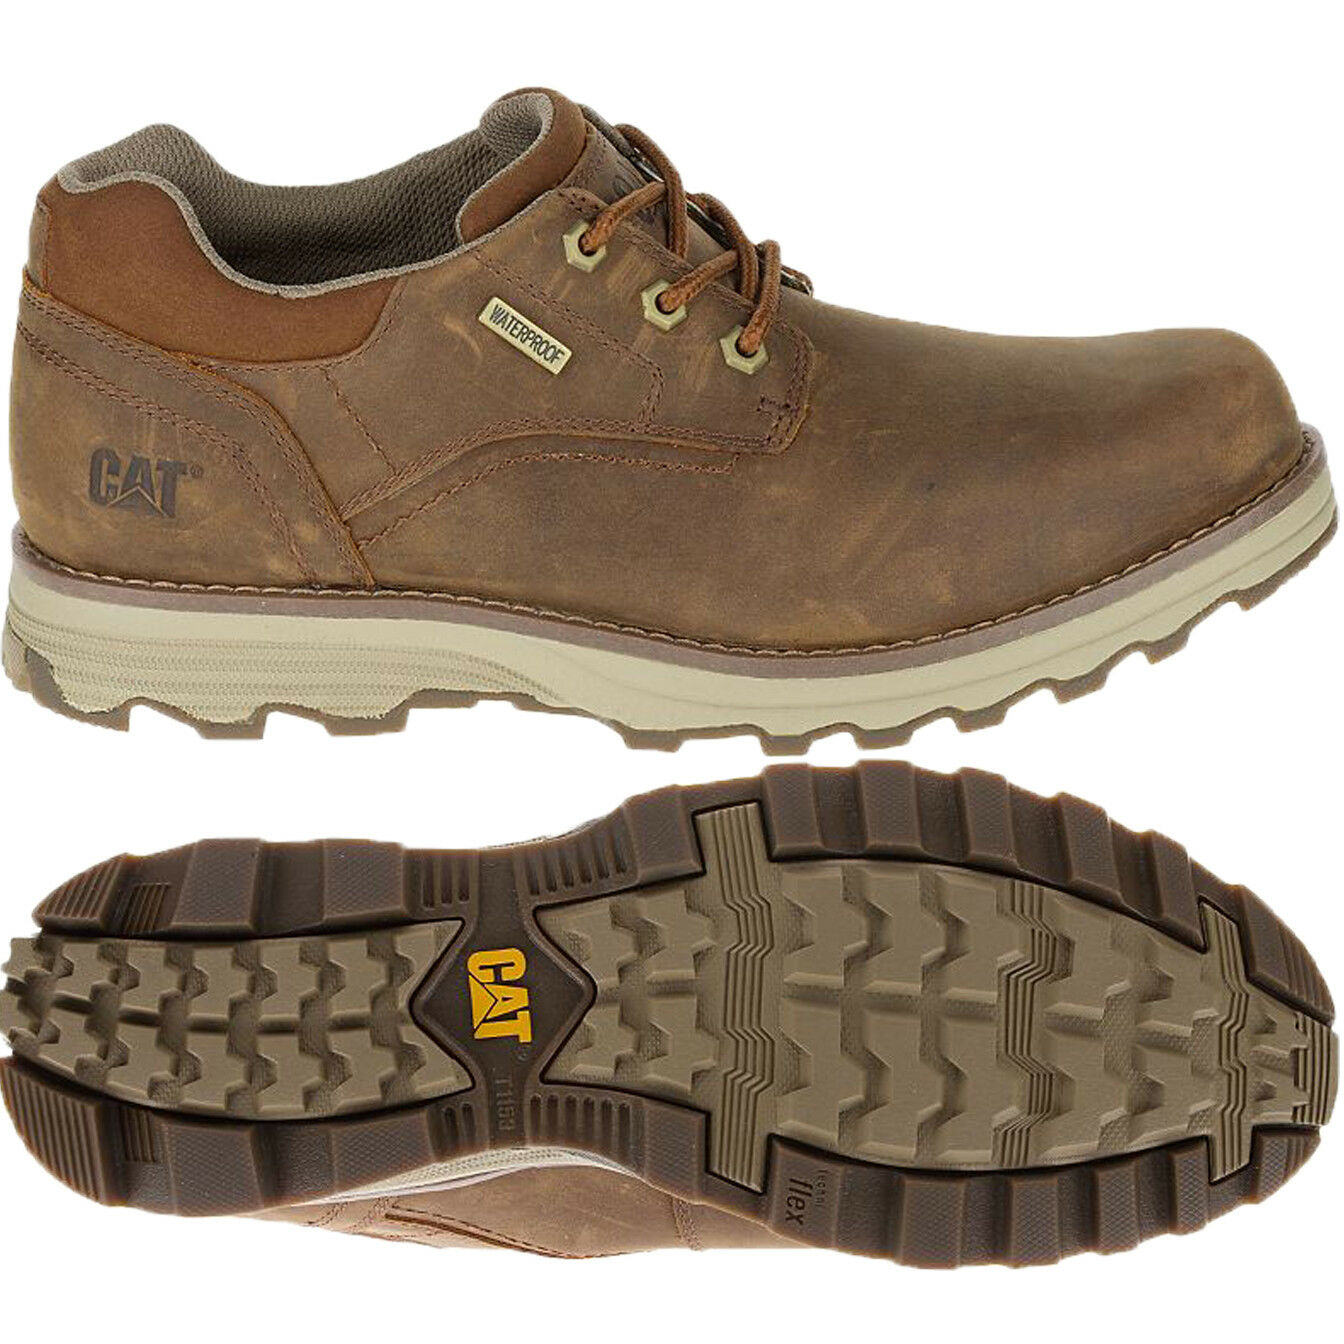 Caterpillar Shoes Uomo Pelle Prez Prez Pelle Waterproof Brown Lace-up Shoe P720683 1fb6ce